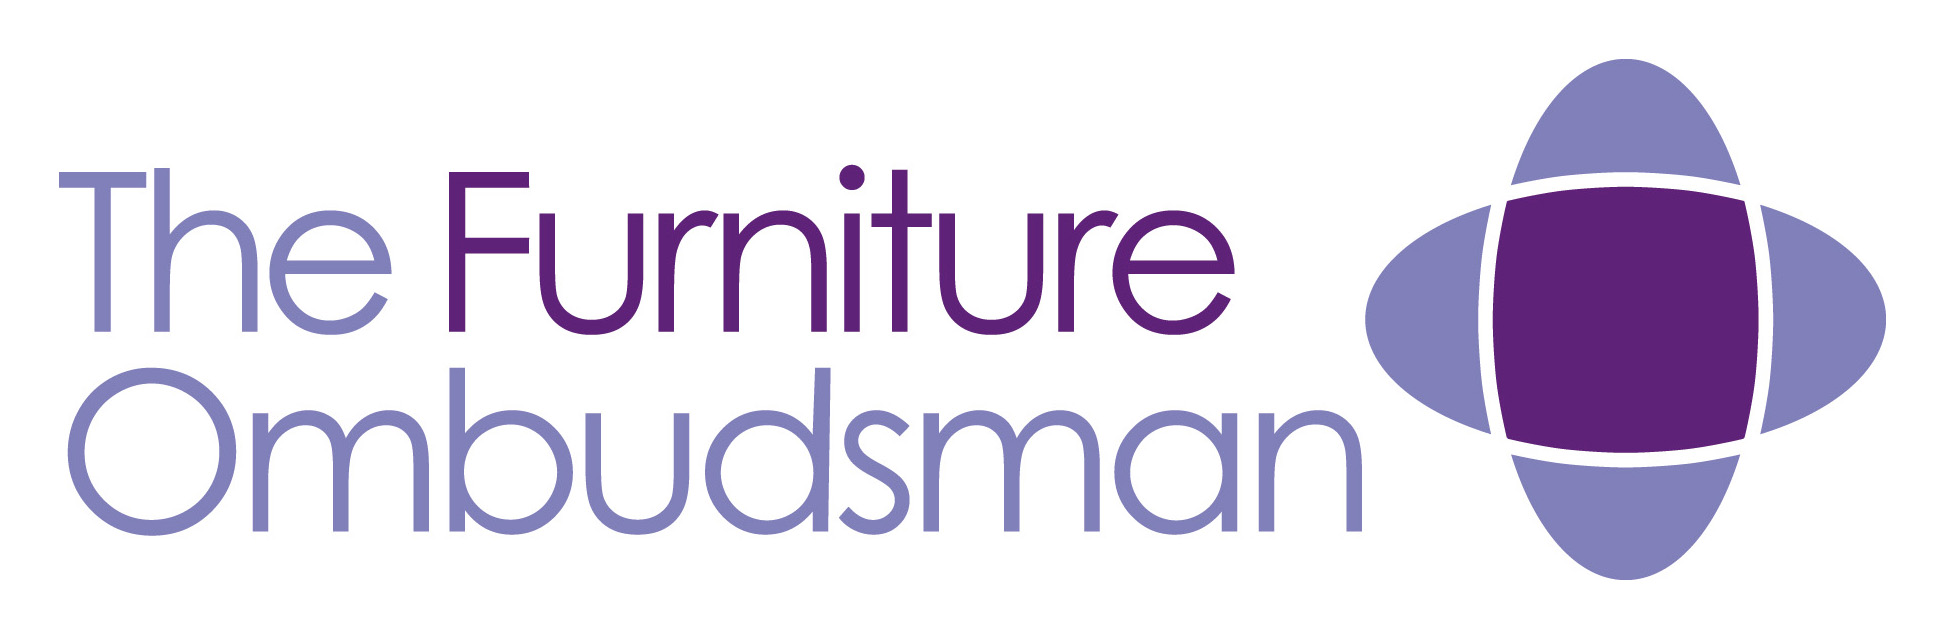 the furniture ombudsman launches new training events in On furniture ombudsman